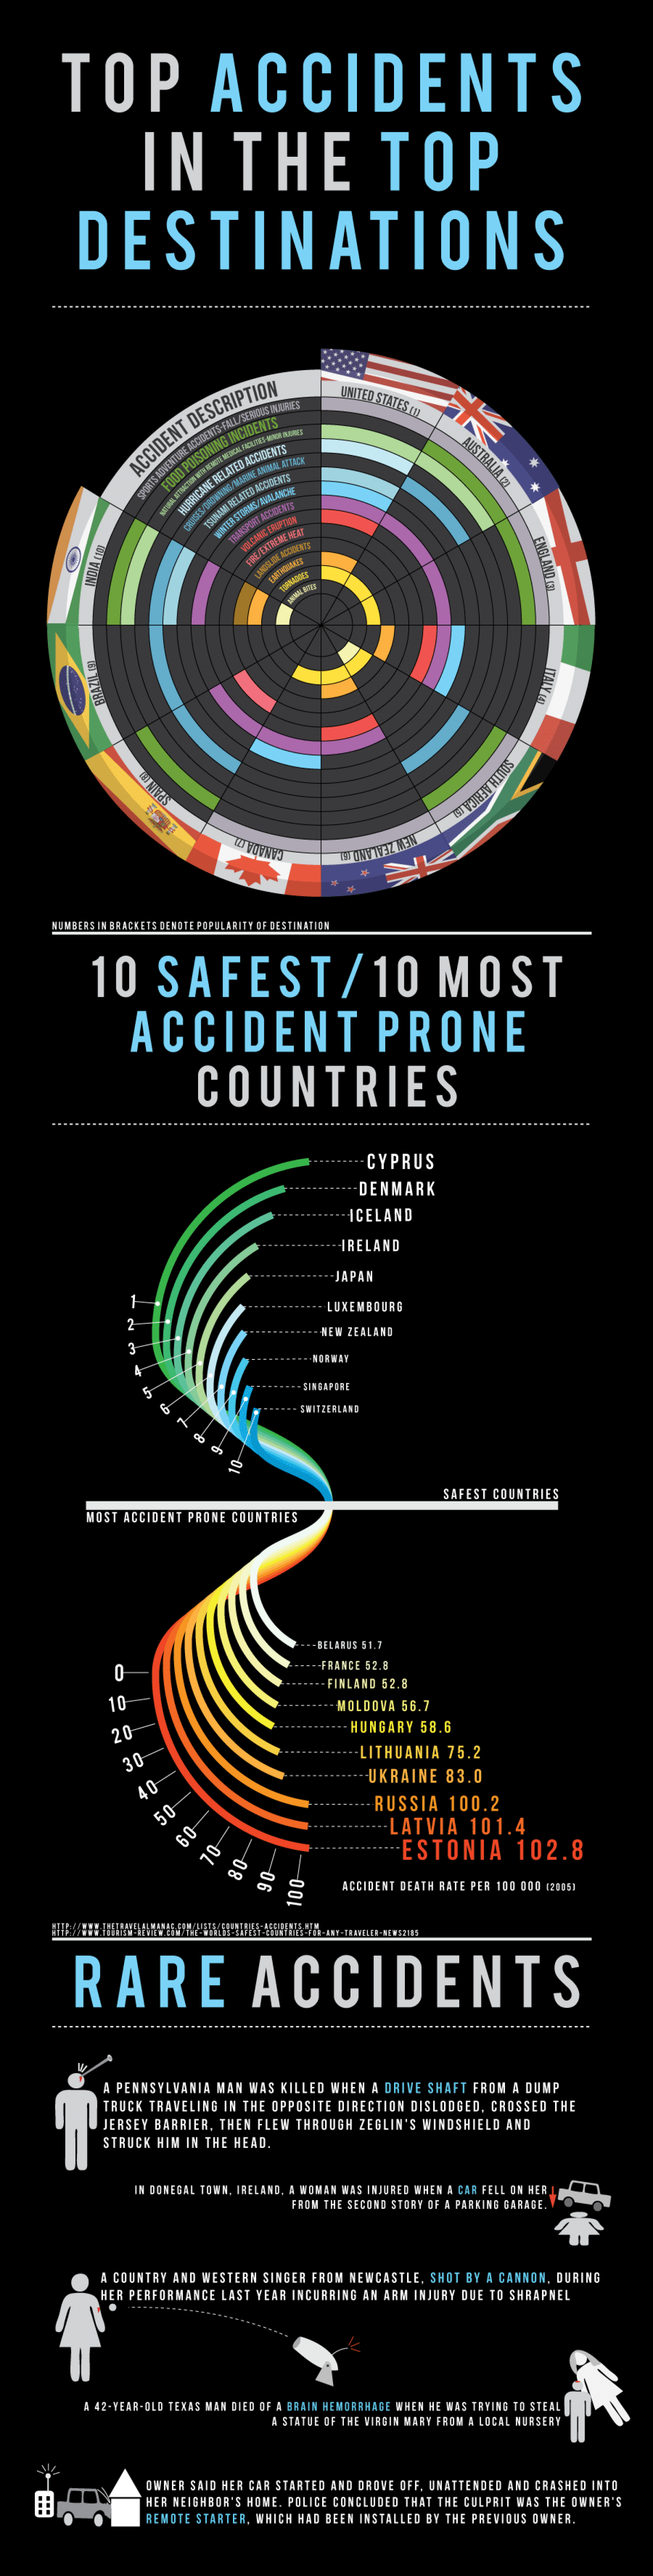 Worldwide Travel Accidents Infographic